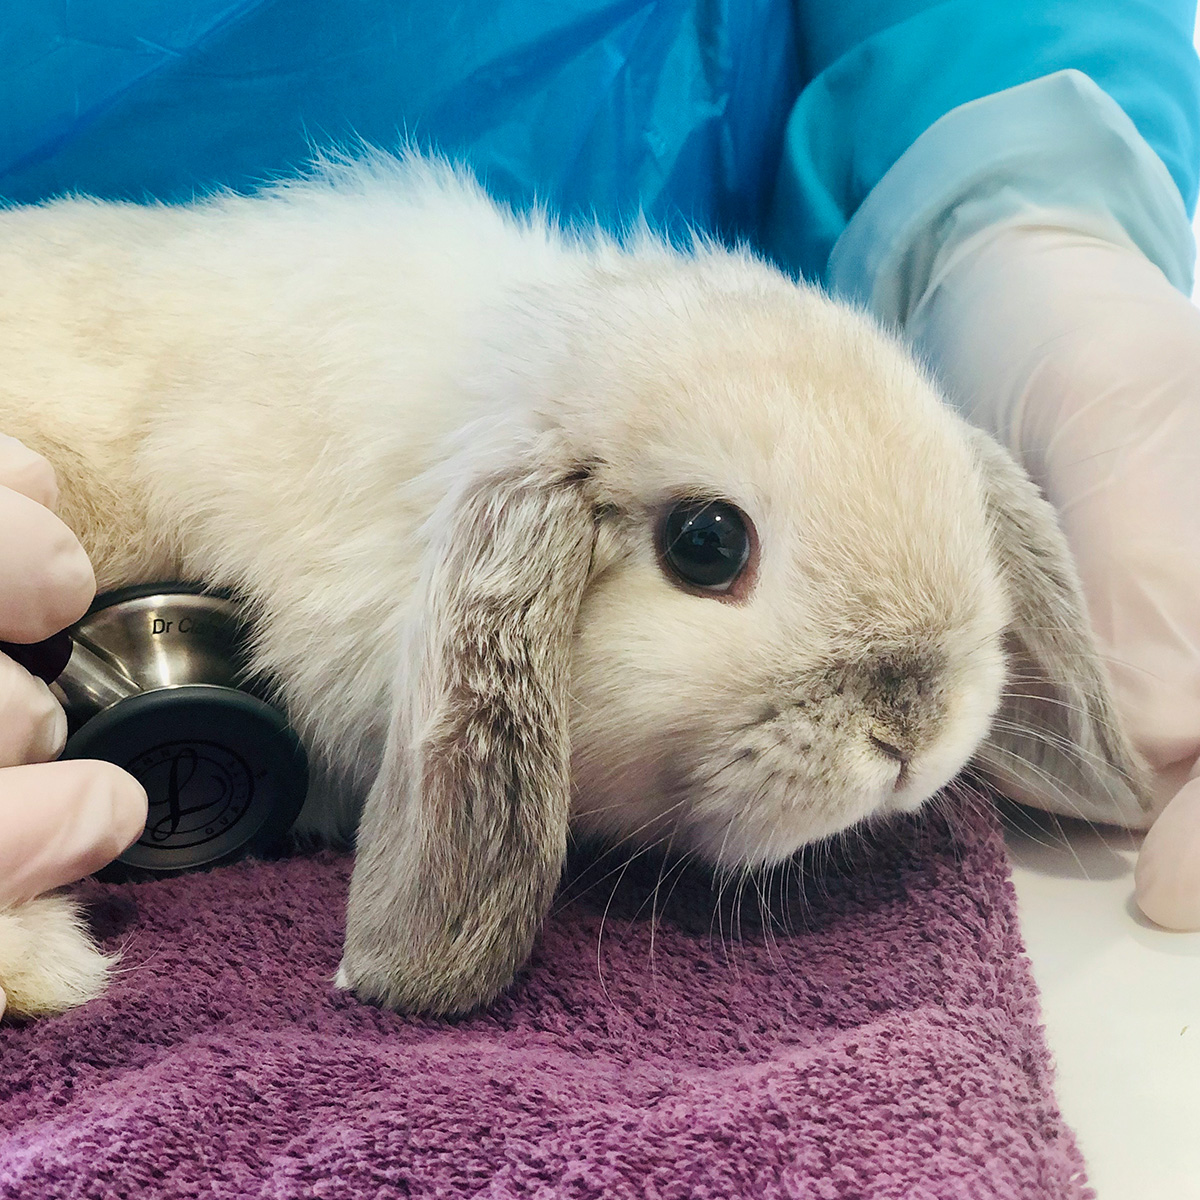 Rabbit patient being treated by the vet